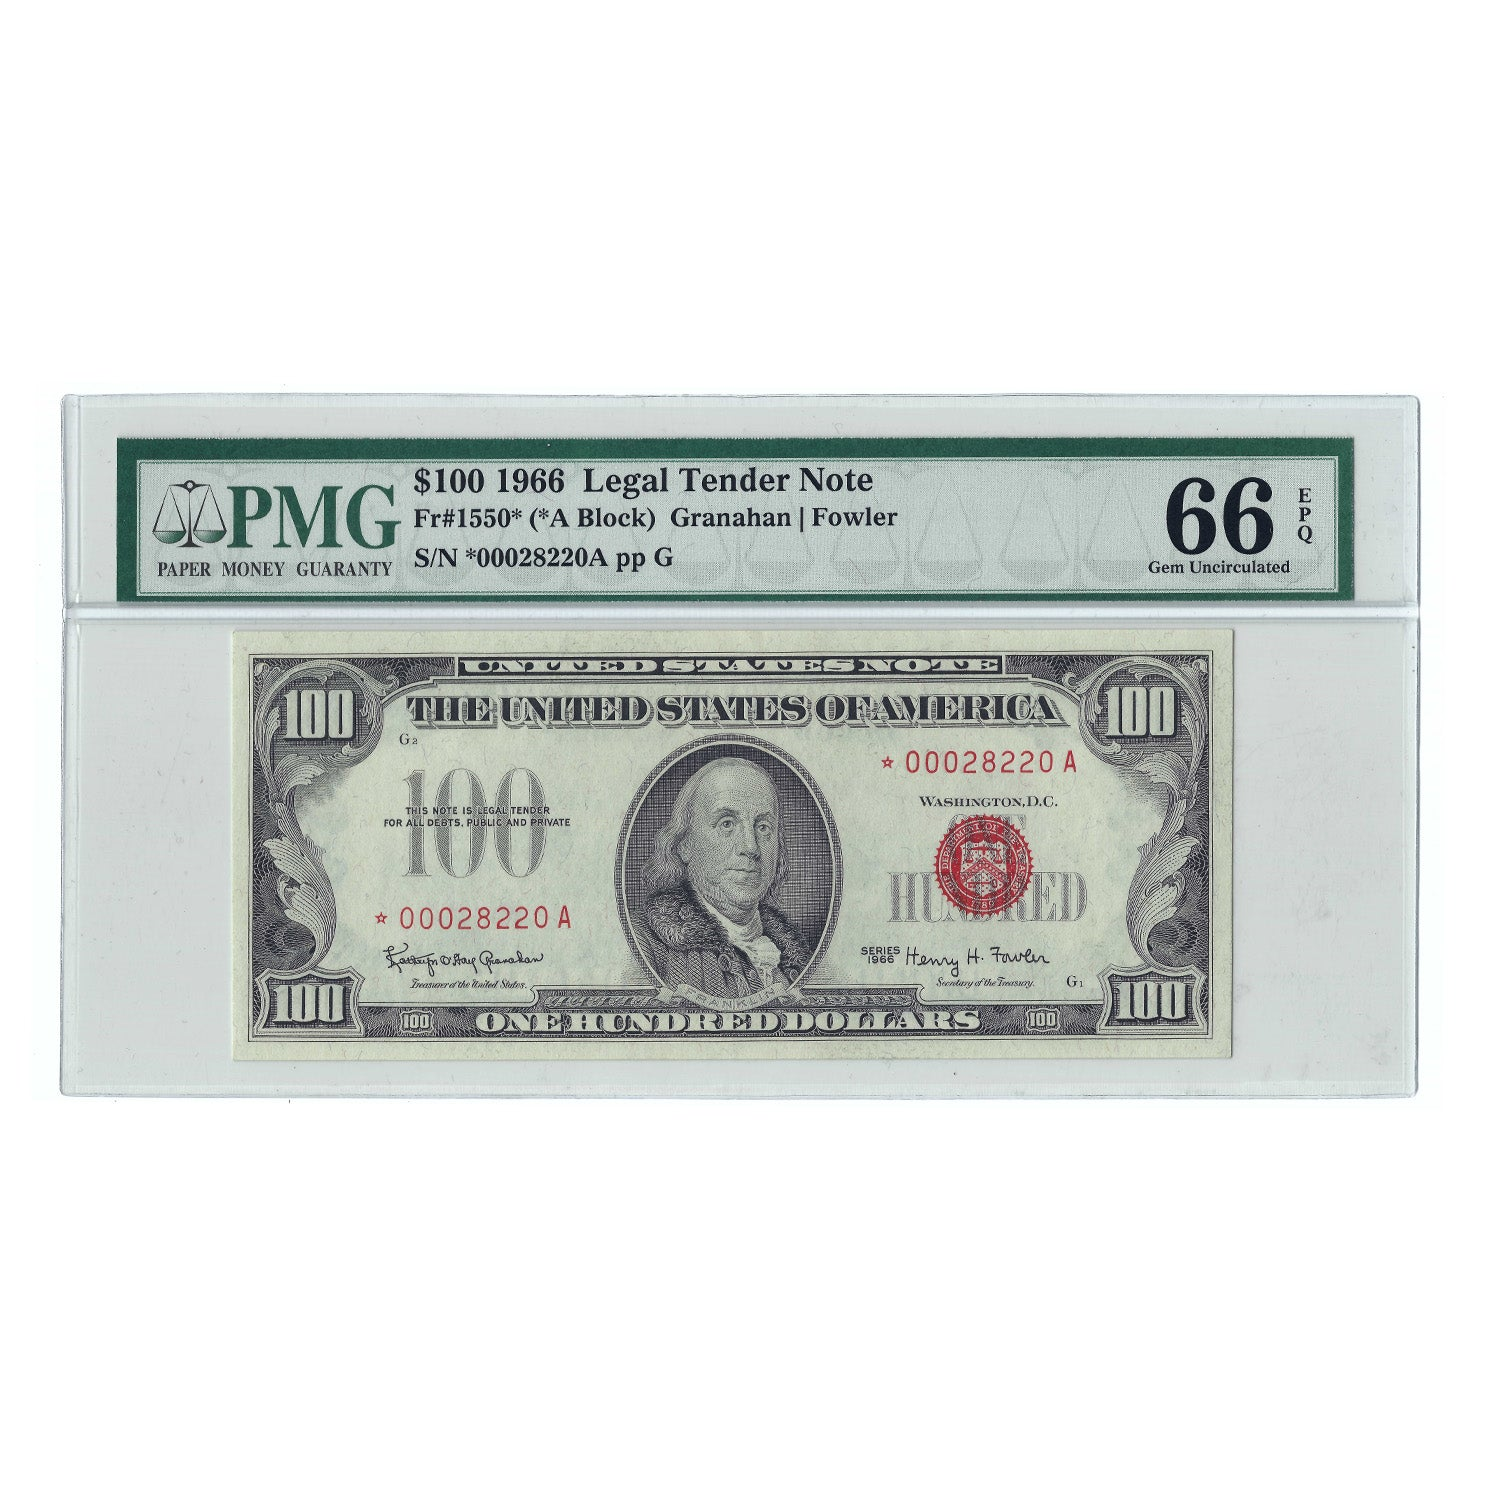 1966 $100 Legal Tender Note, Granahan-Fowler, FR1550, PMG Gem Uncirculated